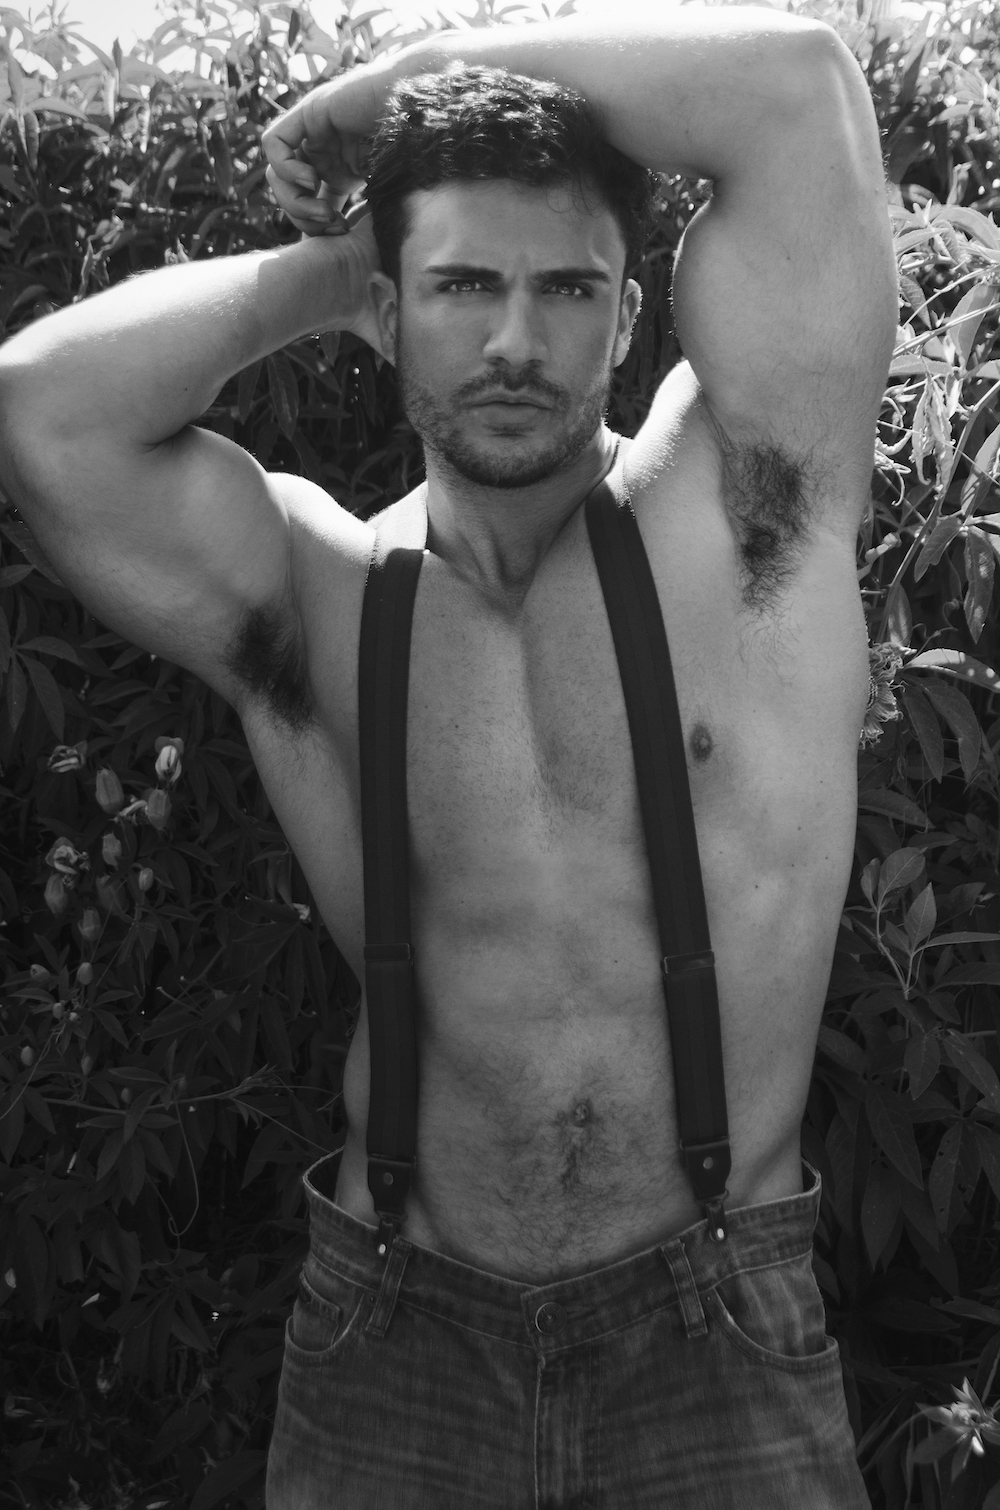 Fusco by Hoover Pnv Network8